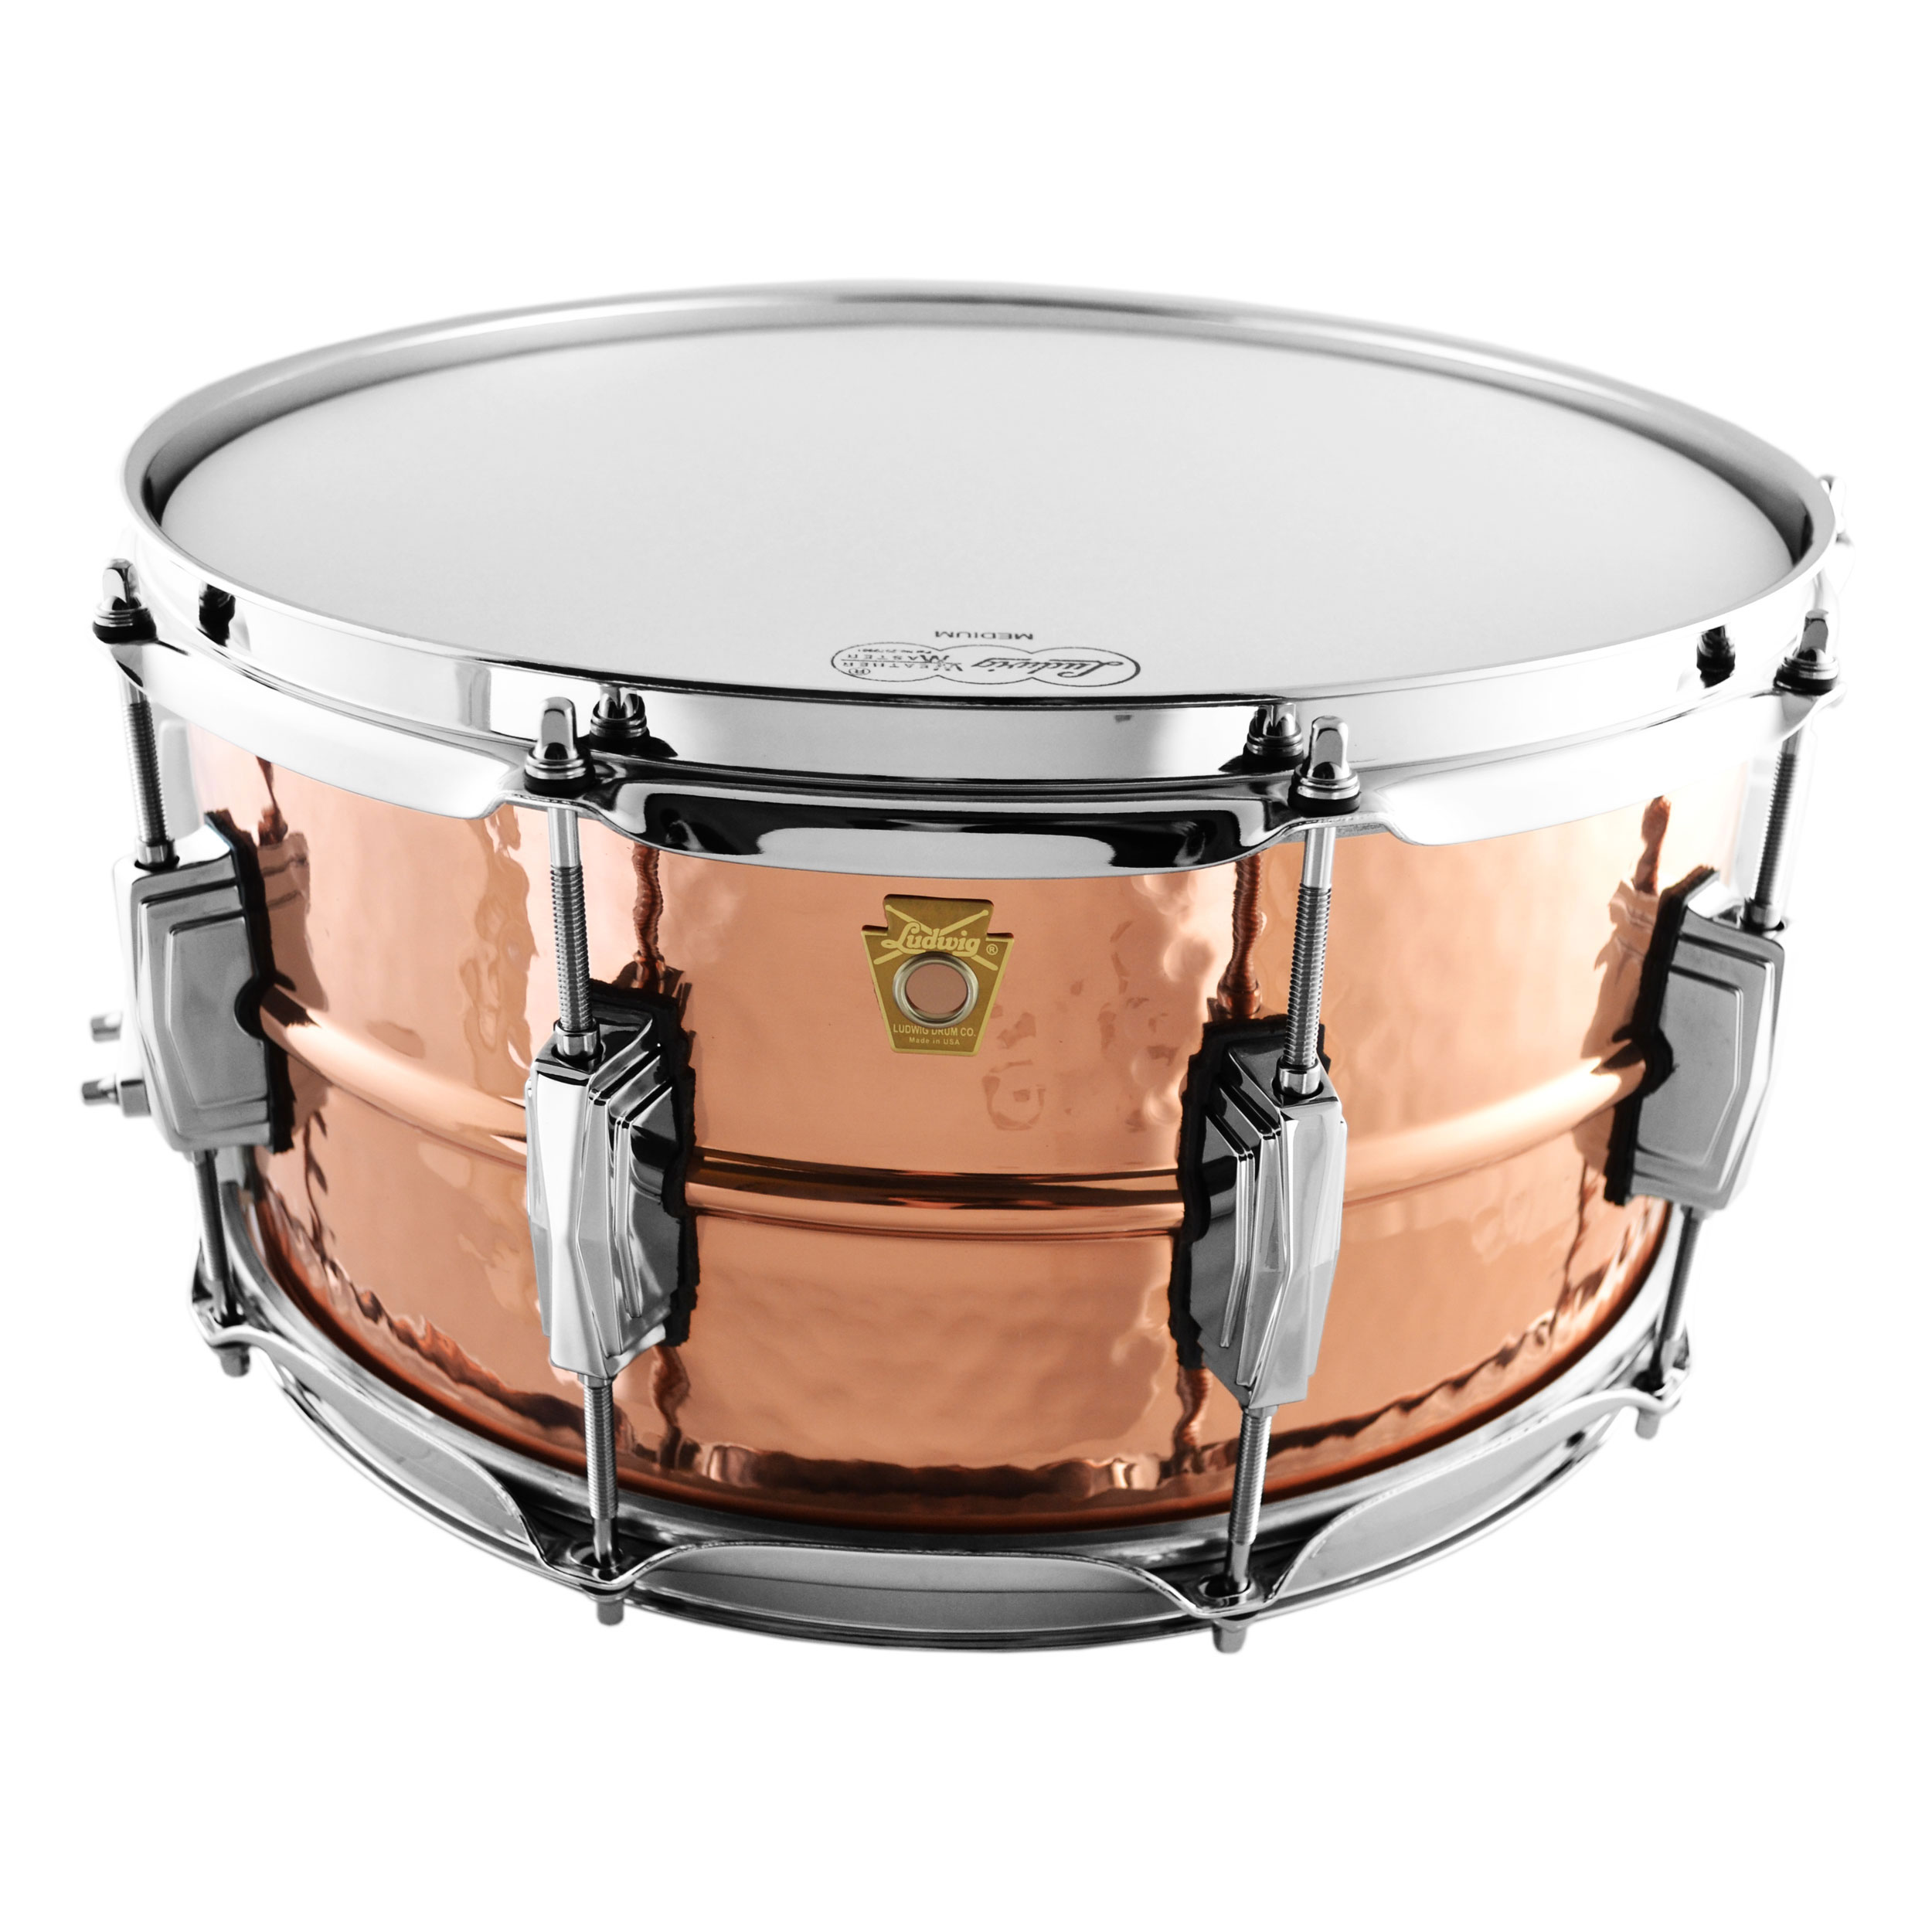 """Ludwig 6.5"""" x 14"""" Hammered Copper Phonic Snare Drum with Imperial Lugs"""